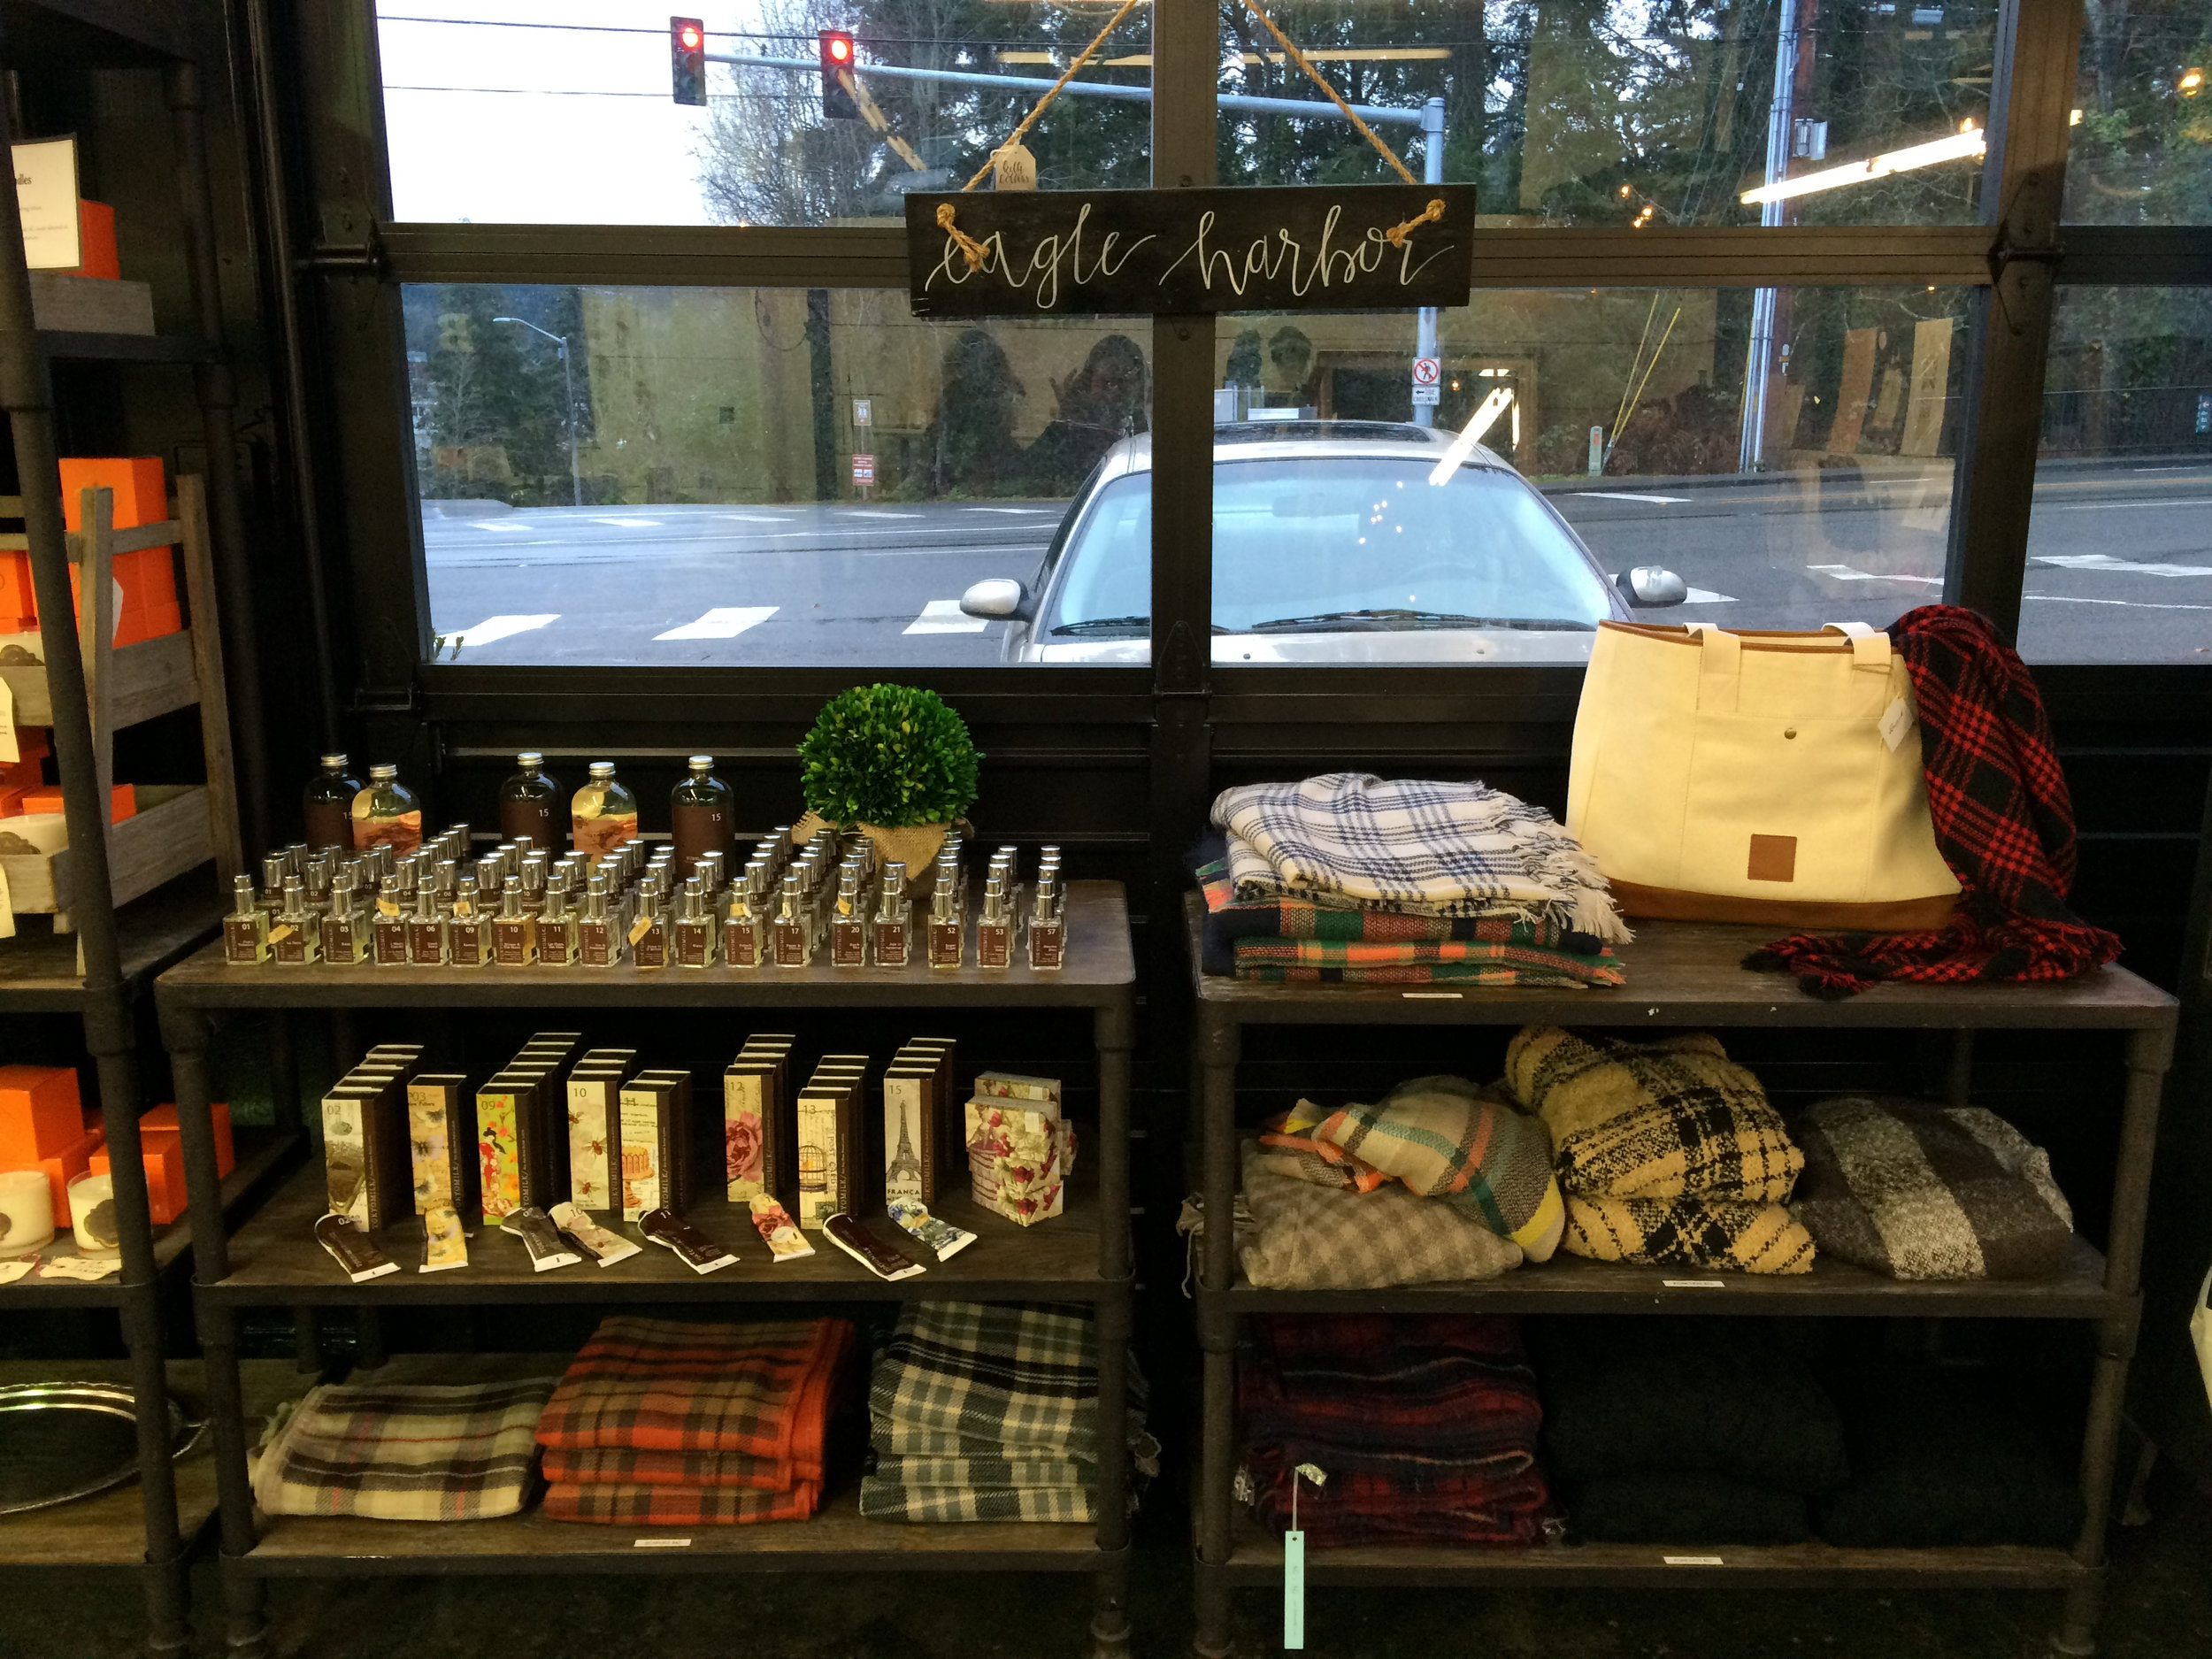 You need one of these travel blankets - trust me. And the signs can be customized to read anything and are, of course, made on Bainbridge Island!